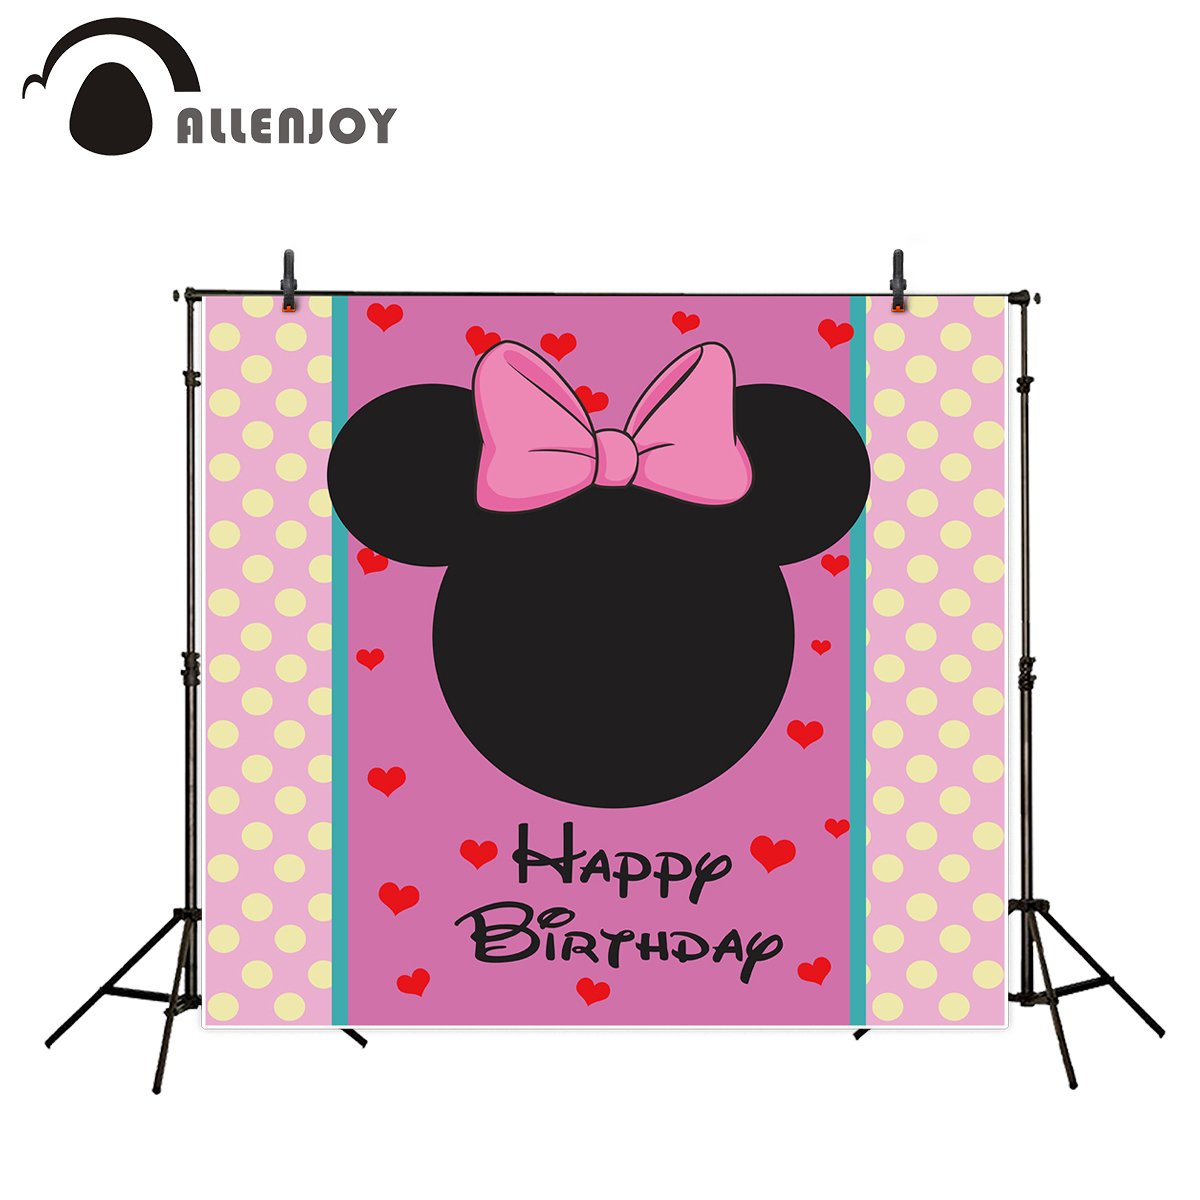 Allenjoy vinyl backdrop for photography Yellow spot pink love mouse birthday pretty backdrop for girl custom 300*200cm 8x10ft valentine s day photography pink love heart shape adult portrait backdrop d 7324